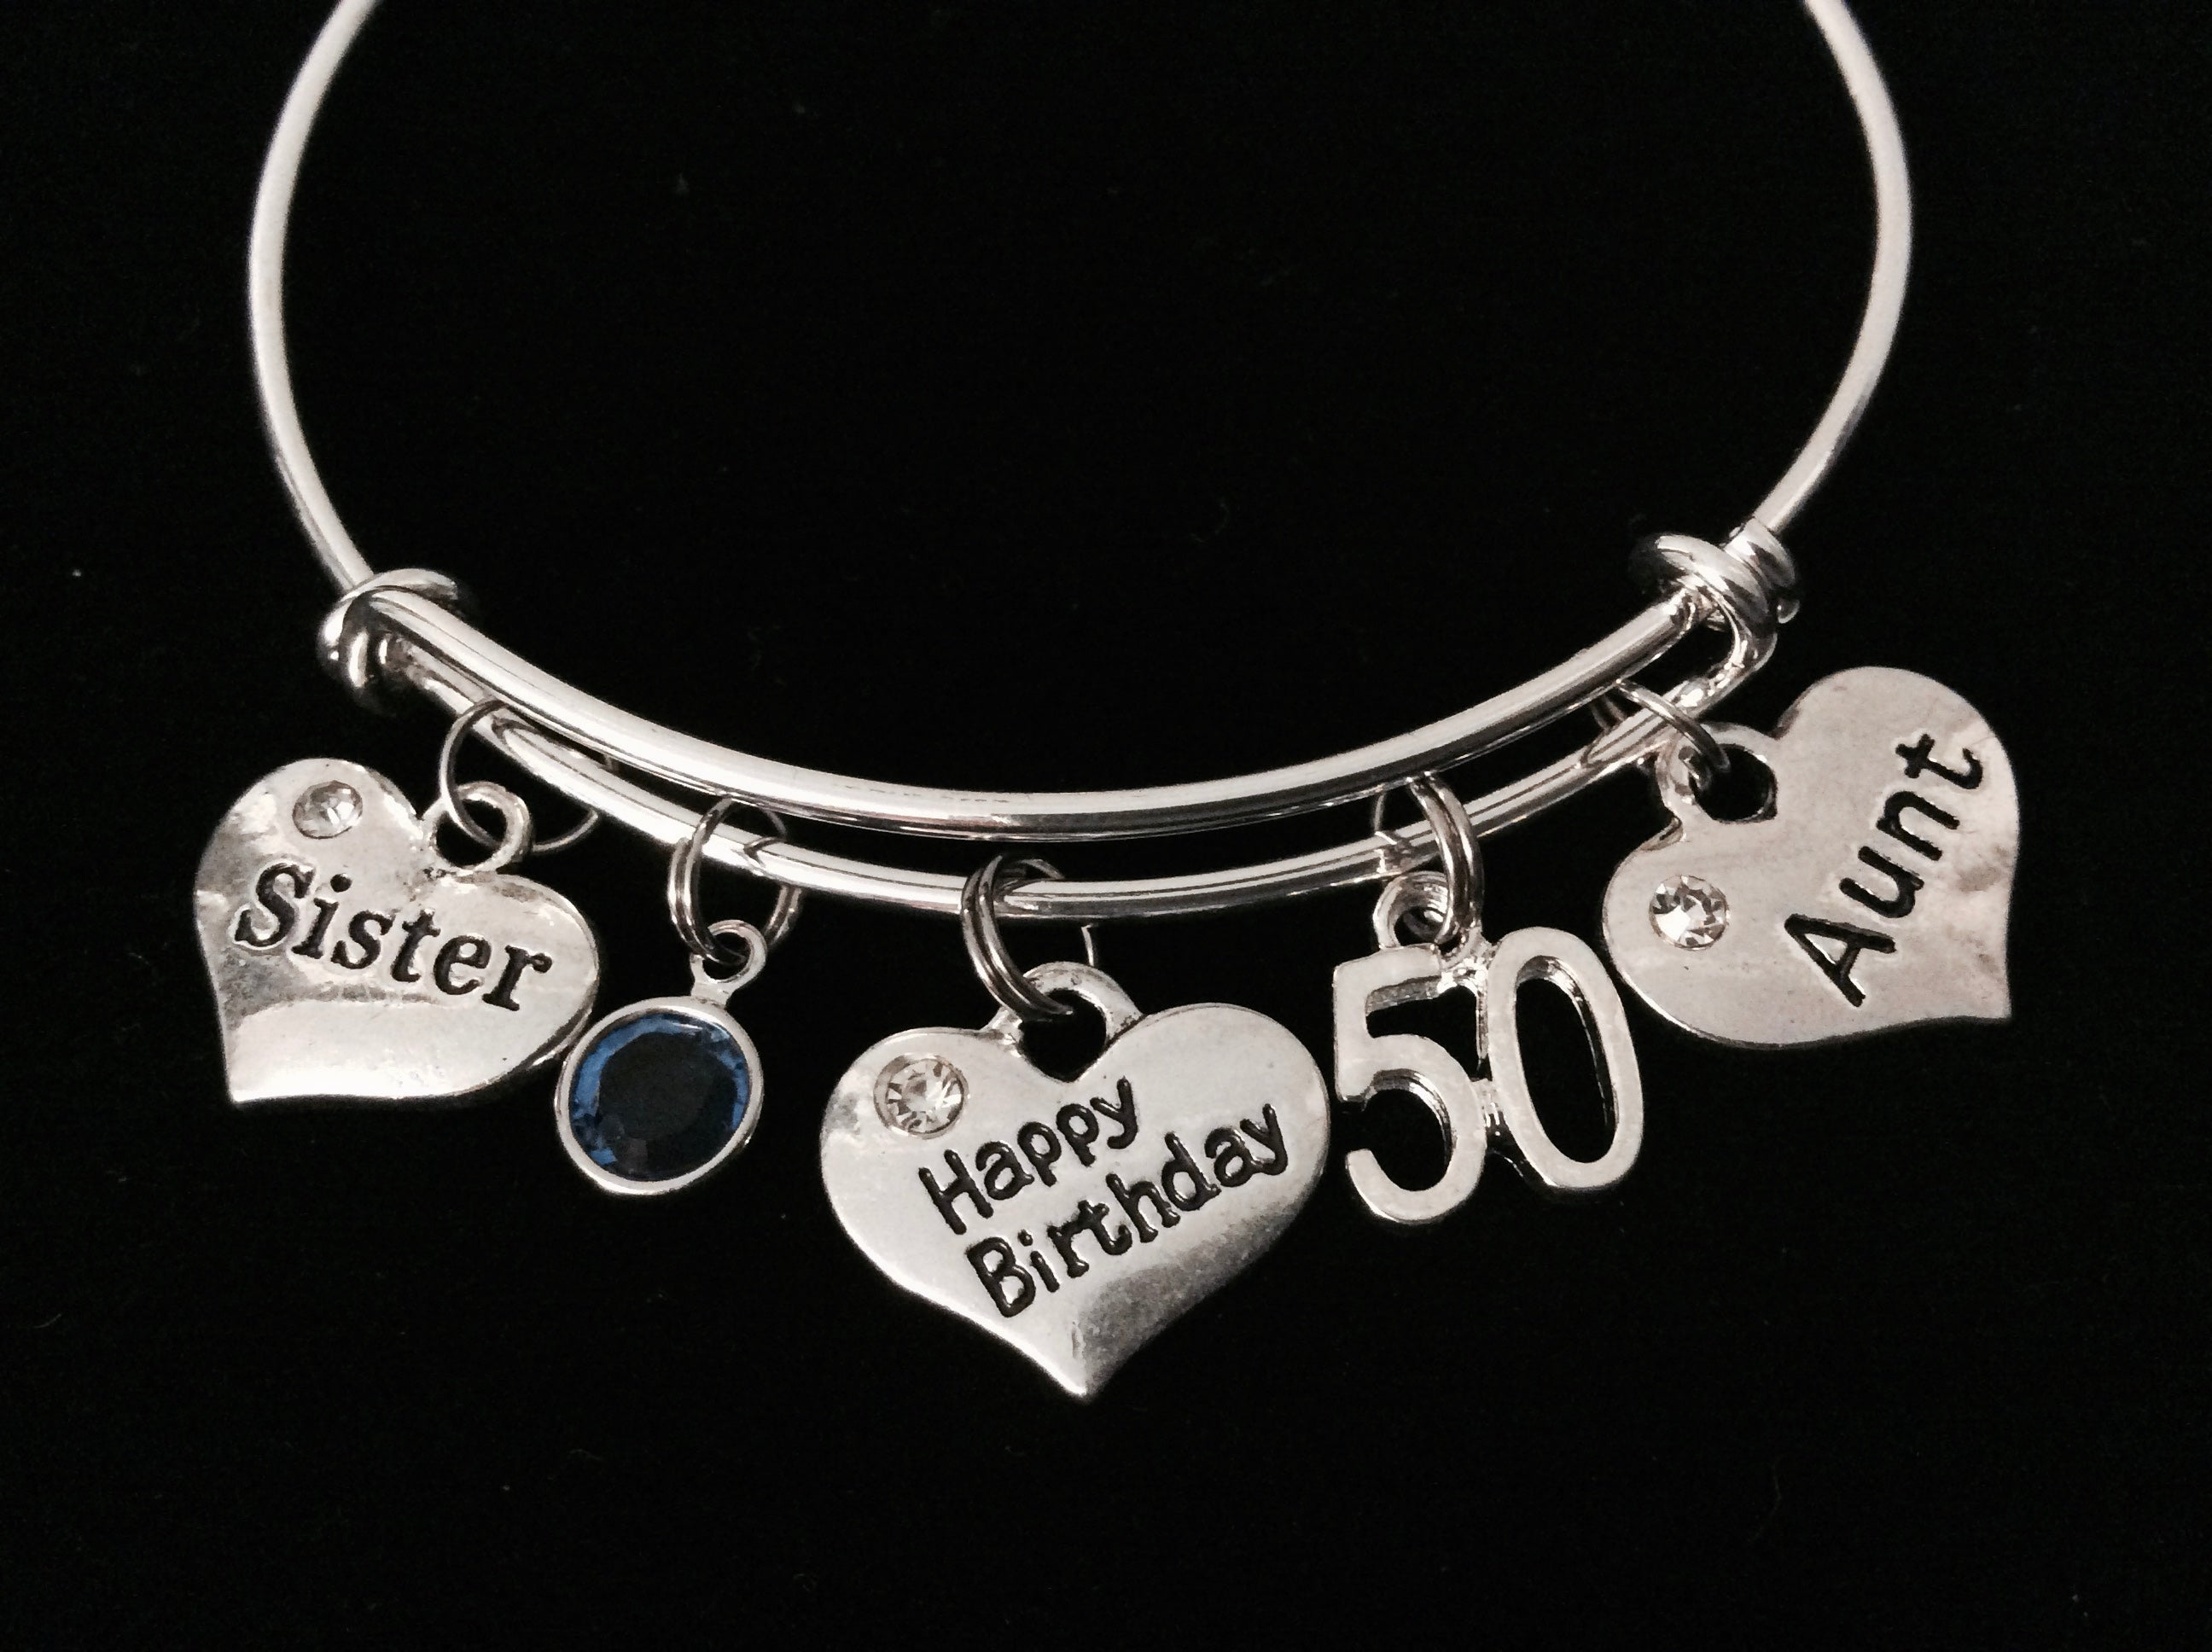 Happy 50th Birthday Sister Aunt Adjustable Bracelet Silver Expandable Bangle Trendy Gift Birthstone